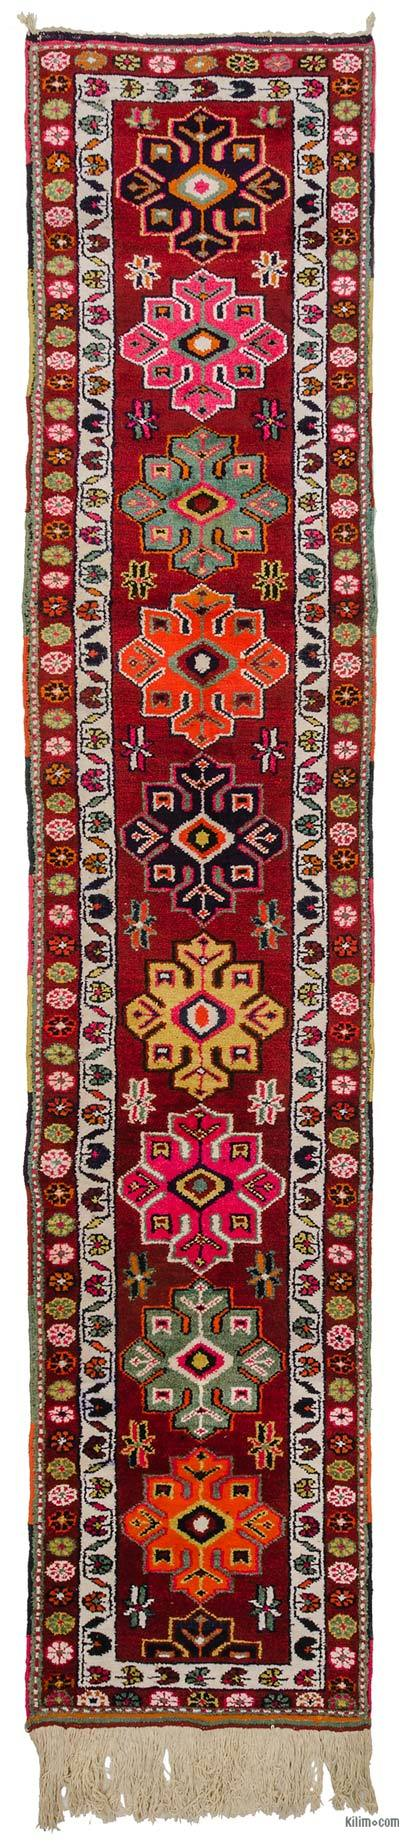 "Multicolor Vintage Turkish Runner Rug - 2' 8"" x 13' 9"" (32 in. x 165 in.)"